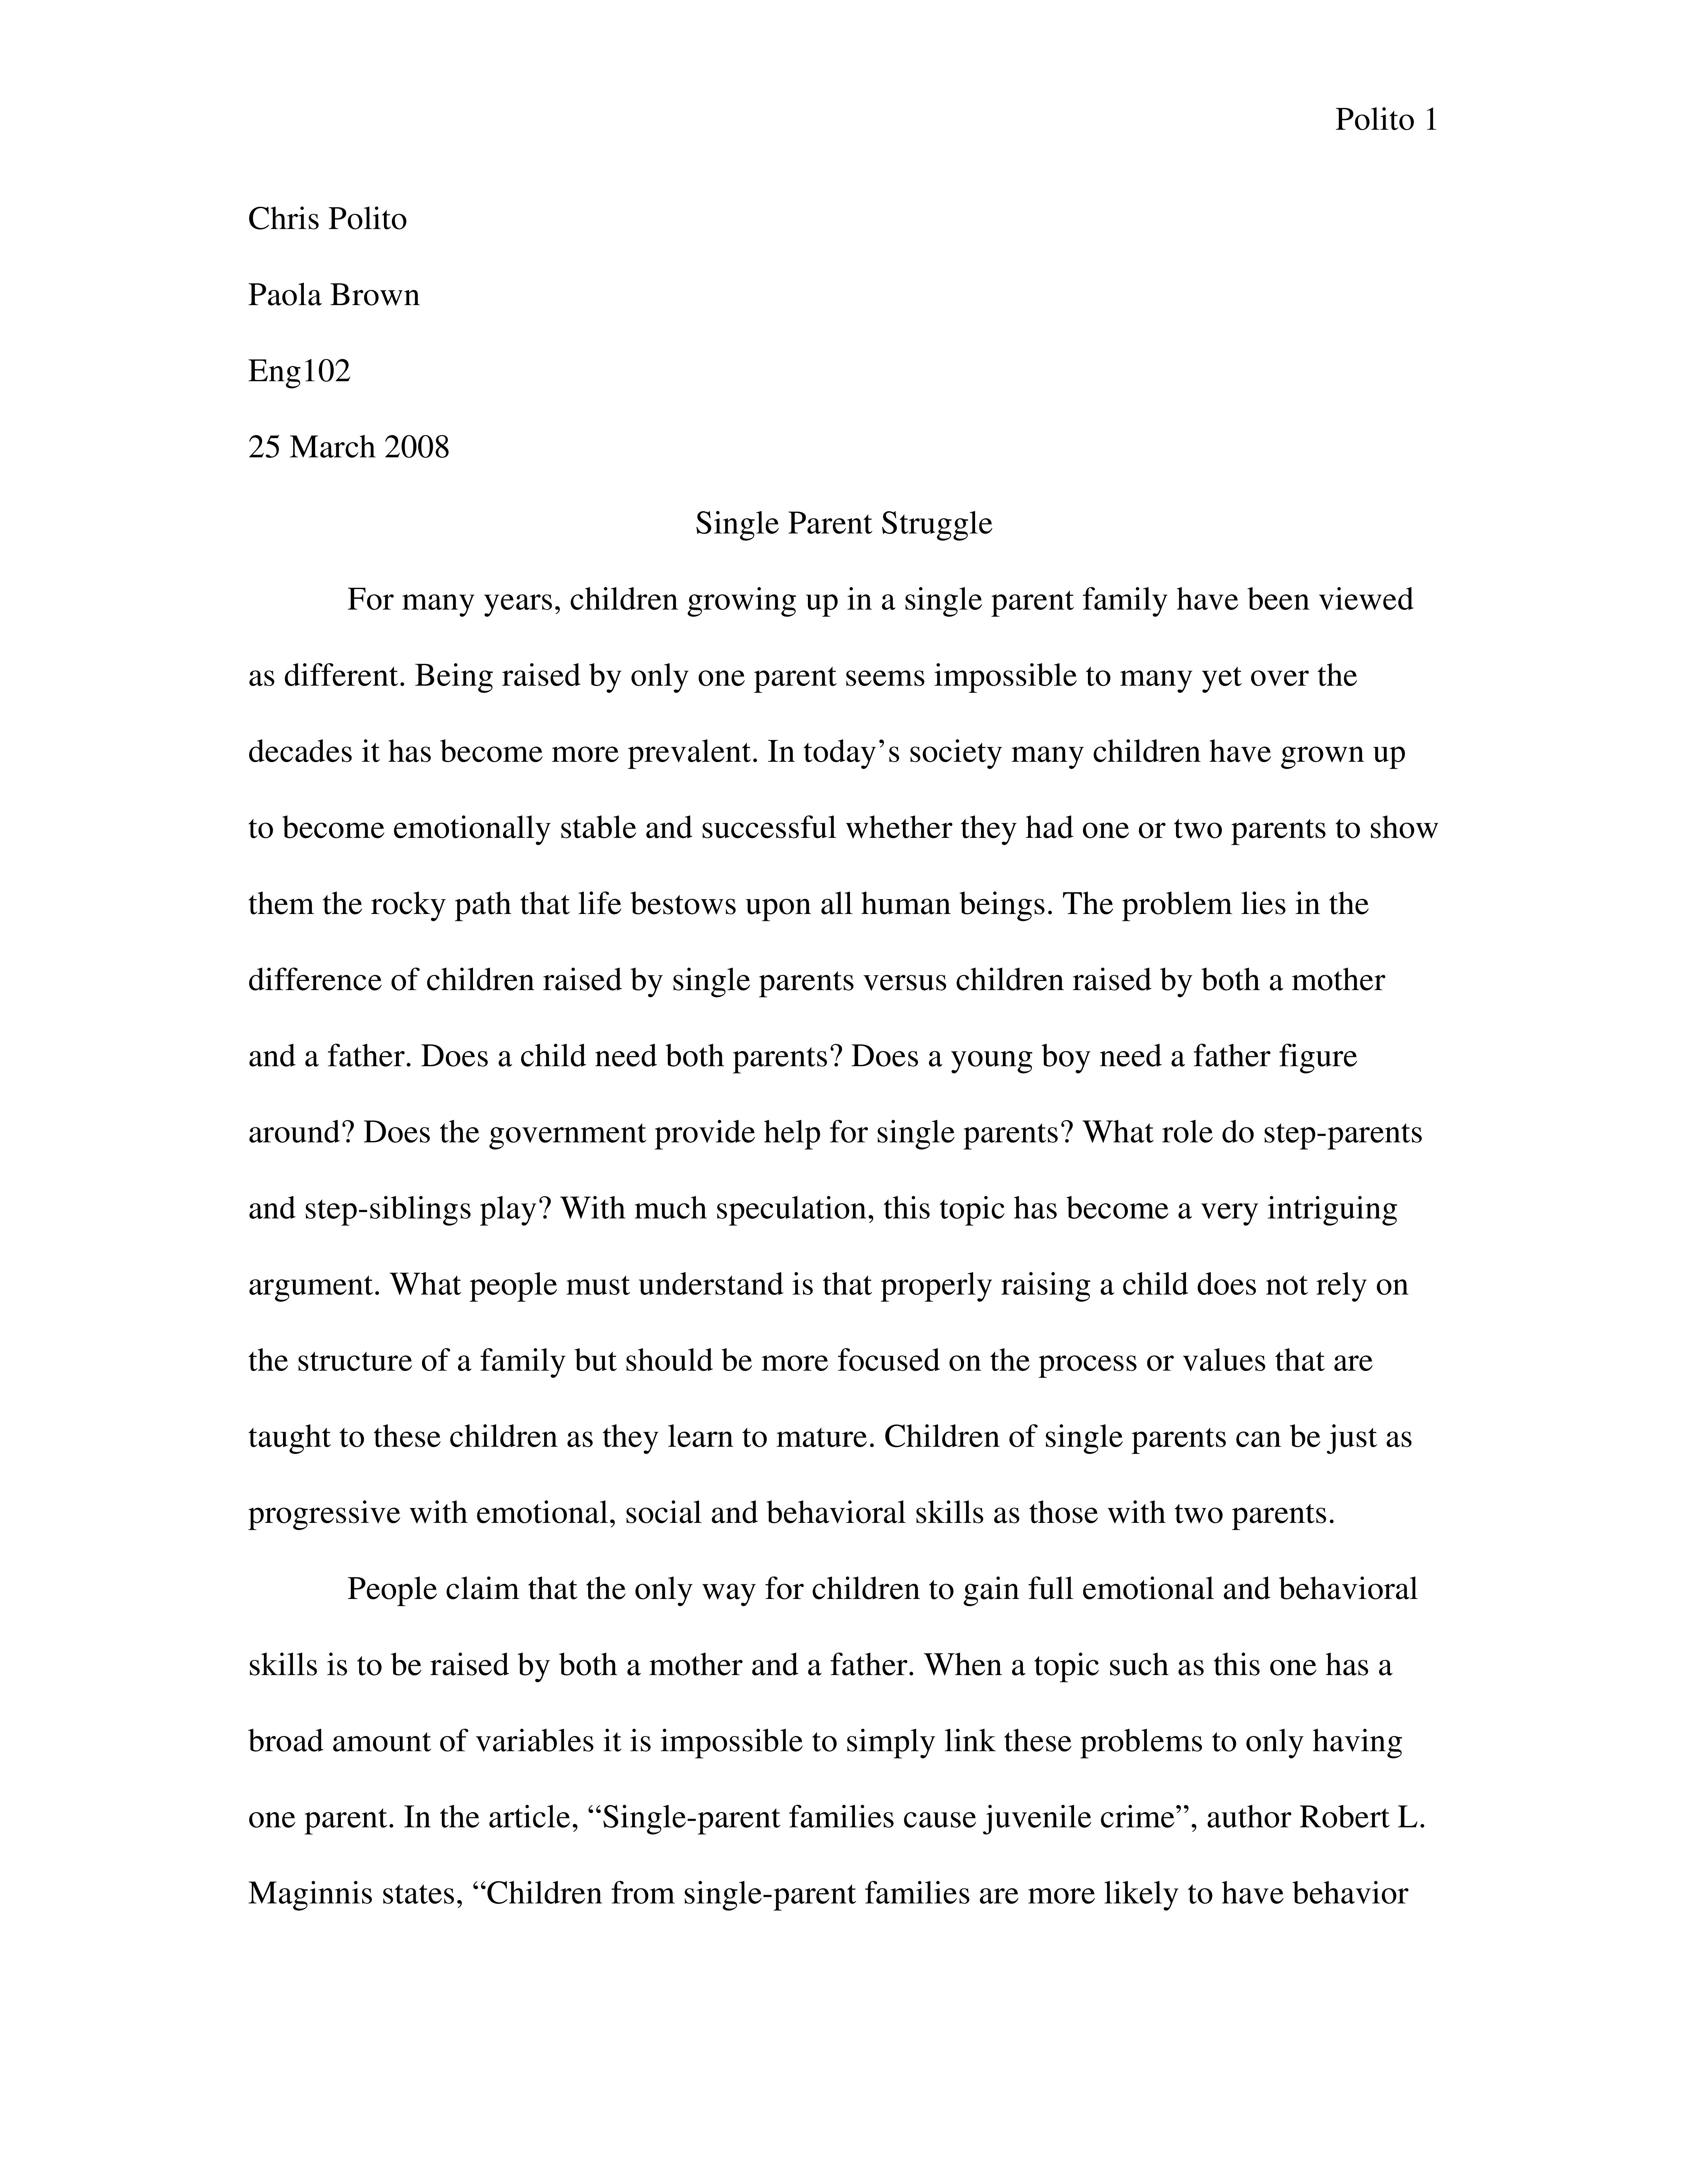 Help me writing a research paper vs expository essay